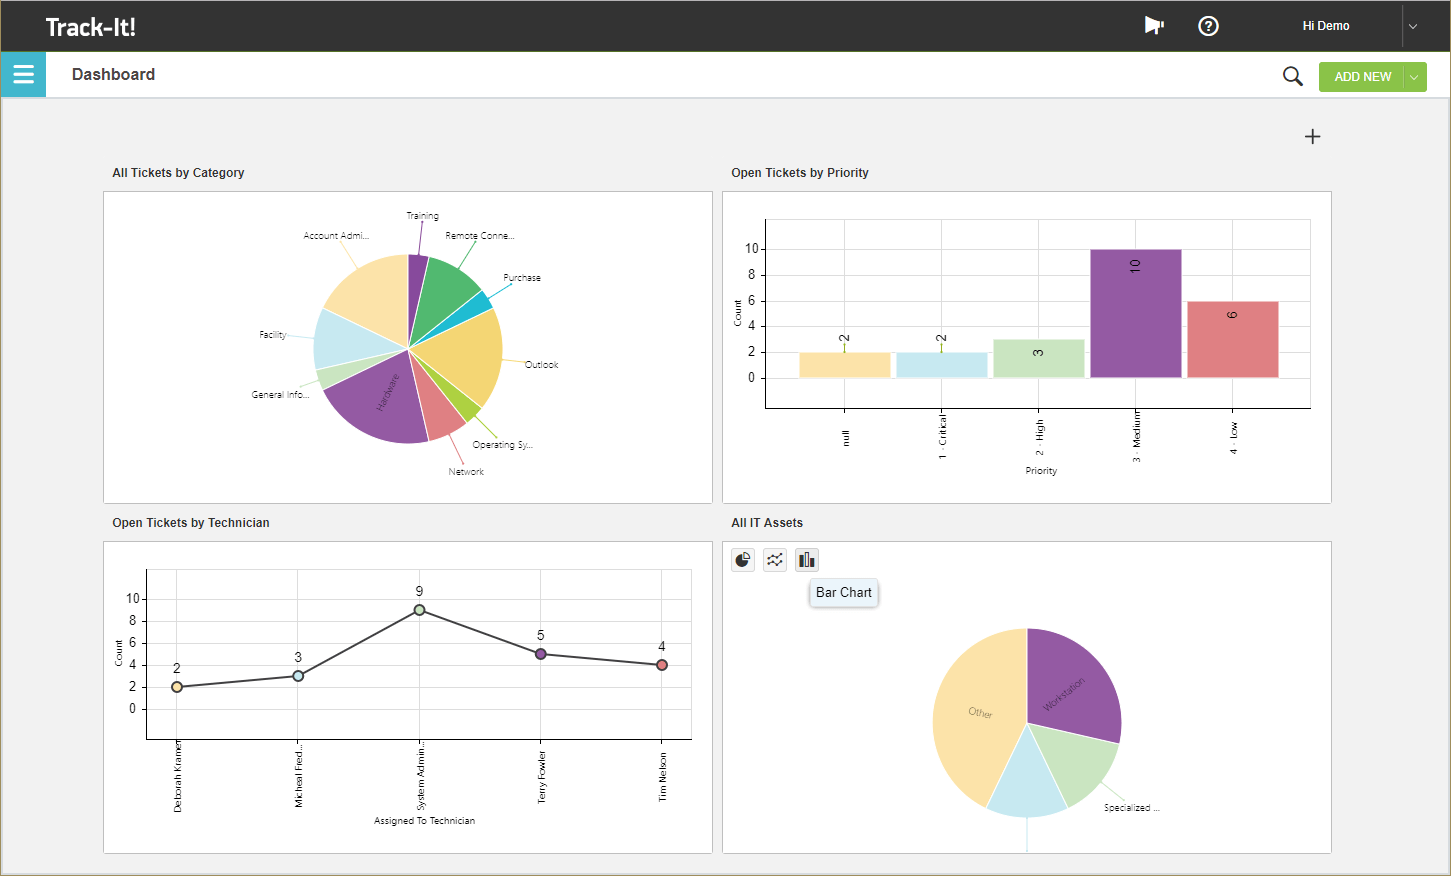 Reporting Software - Track-It! For IT Help Desks